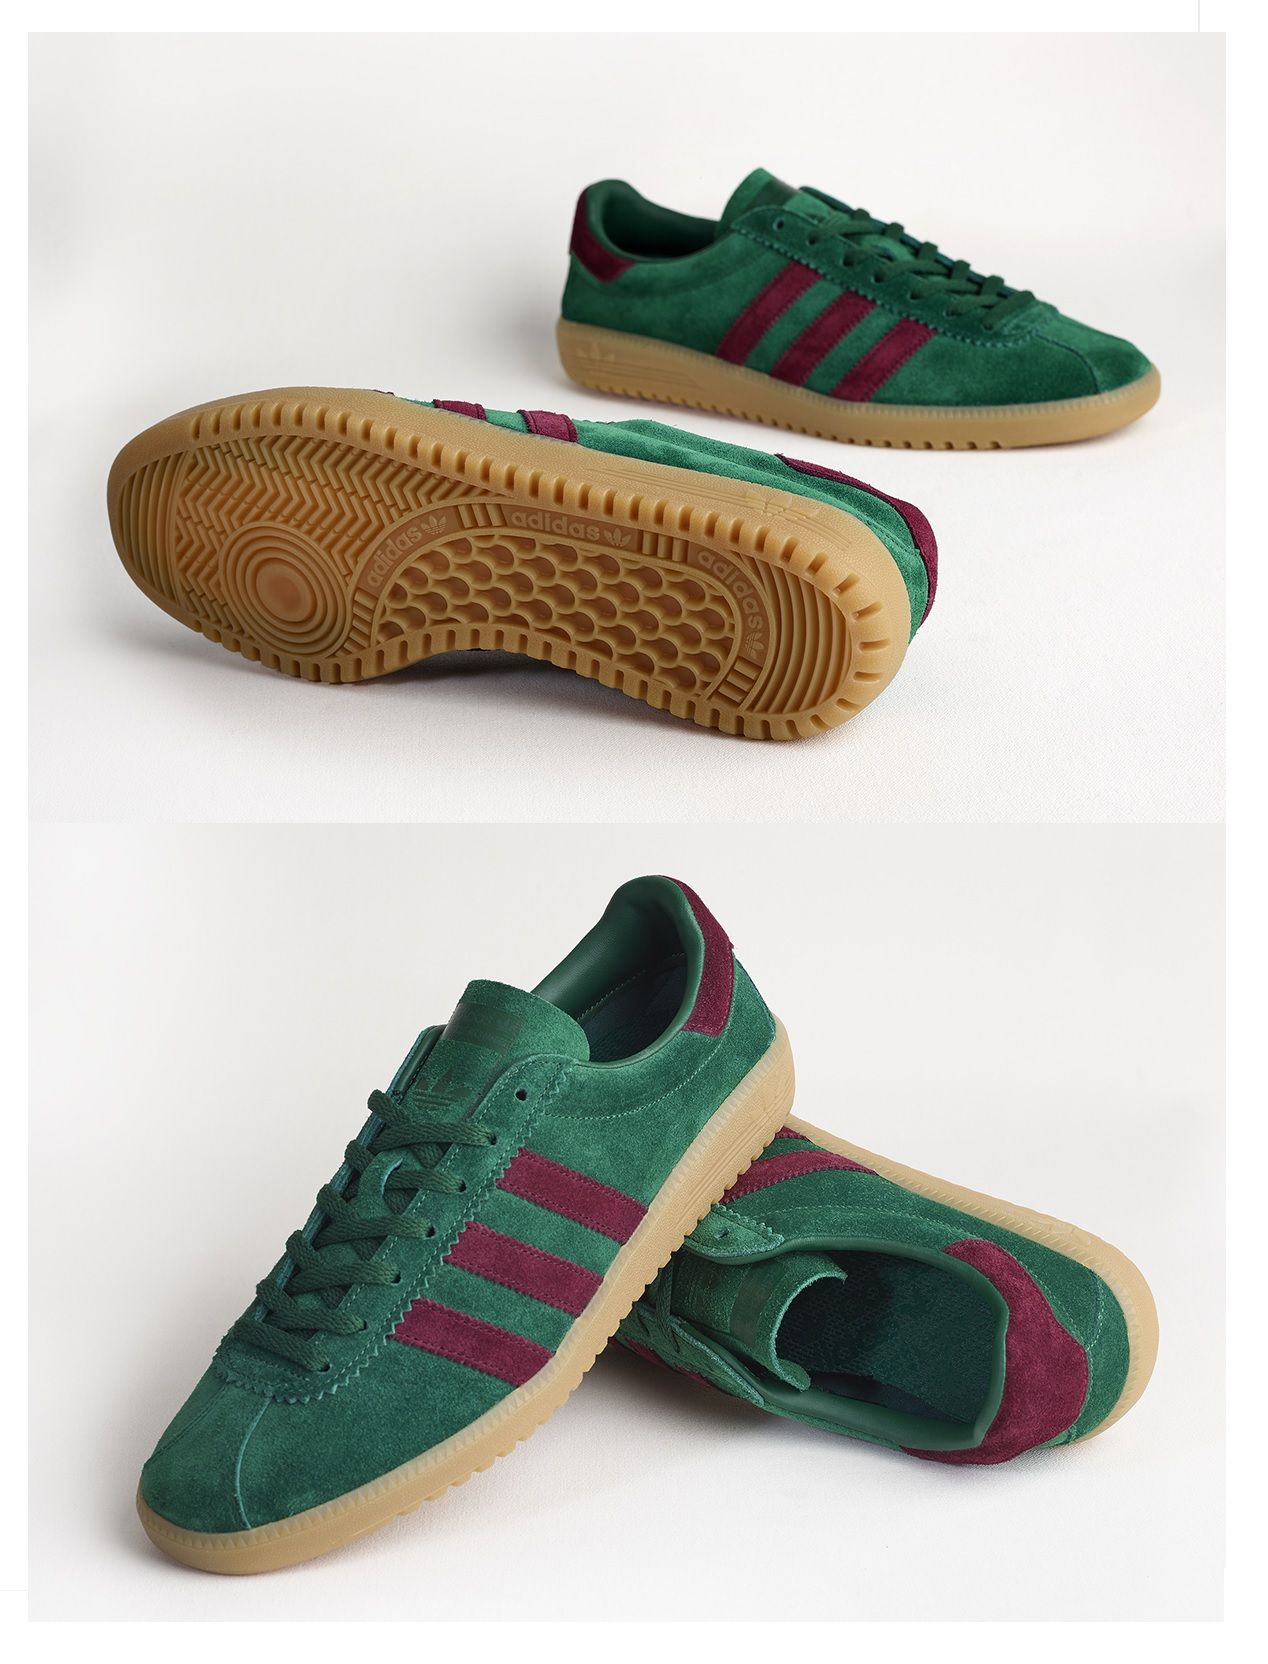 quality design 7254e 8413b adidas Originals Bermuda Pine GreenMaroon